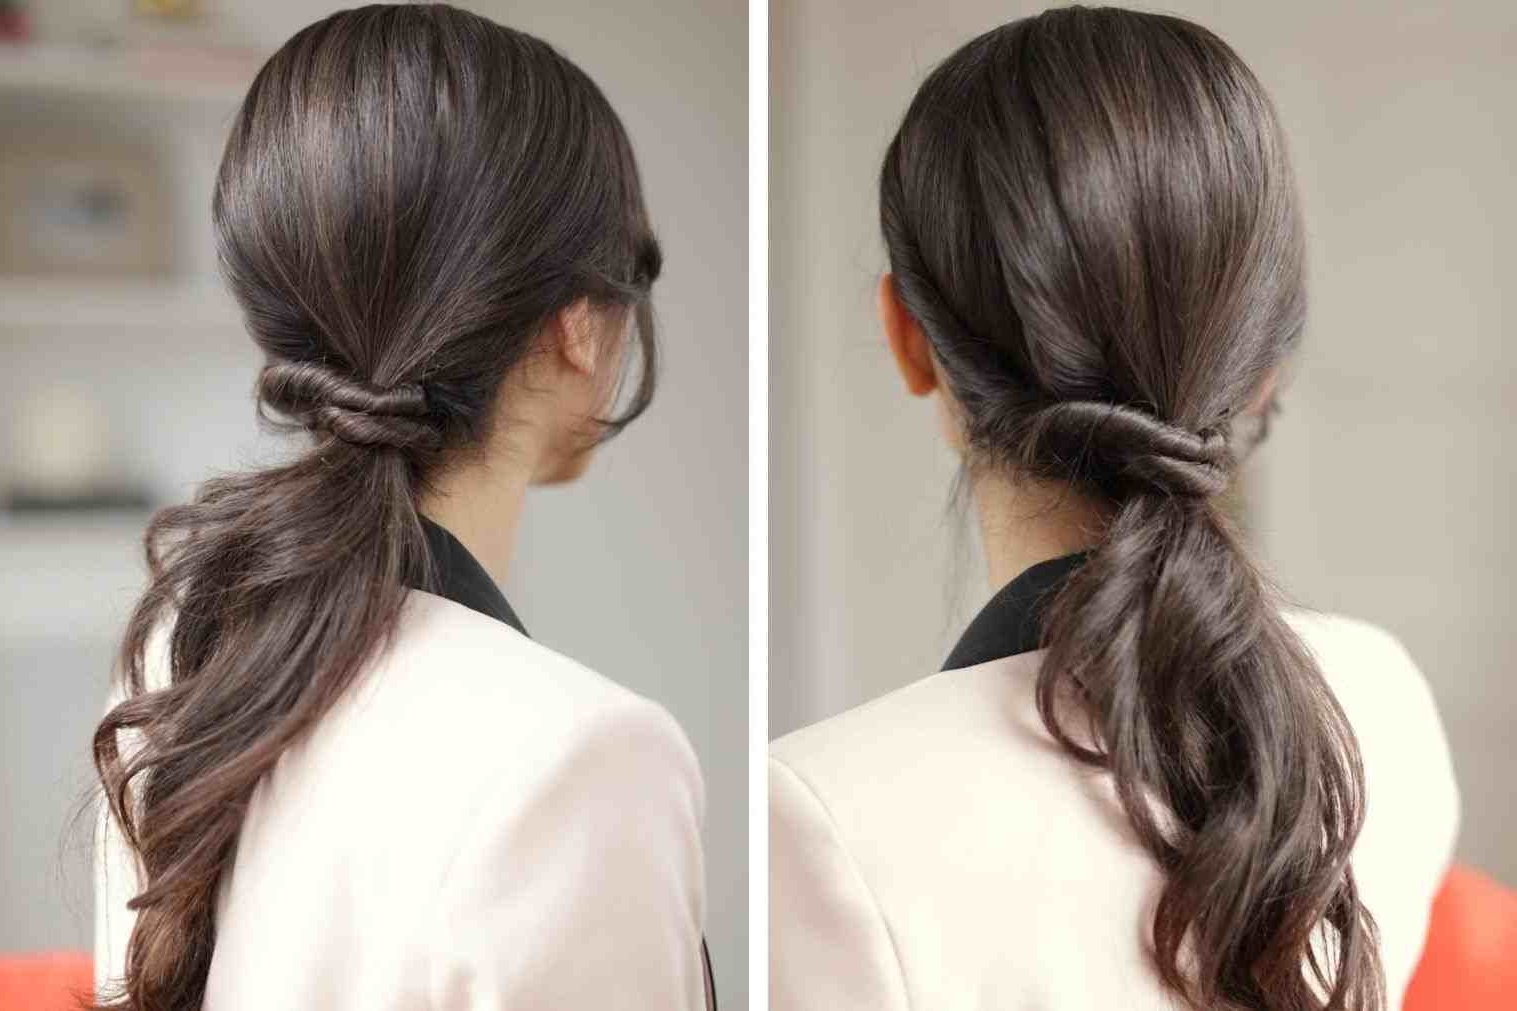 Braid Ponytail Youtuberhyoutubecom Wedding Hairstyles Messy Bridal Intended For Widely Used Twisted And Tousled Ponytail Hairstyles (View 4 of 20)